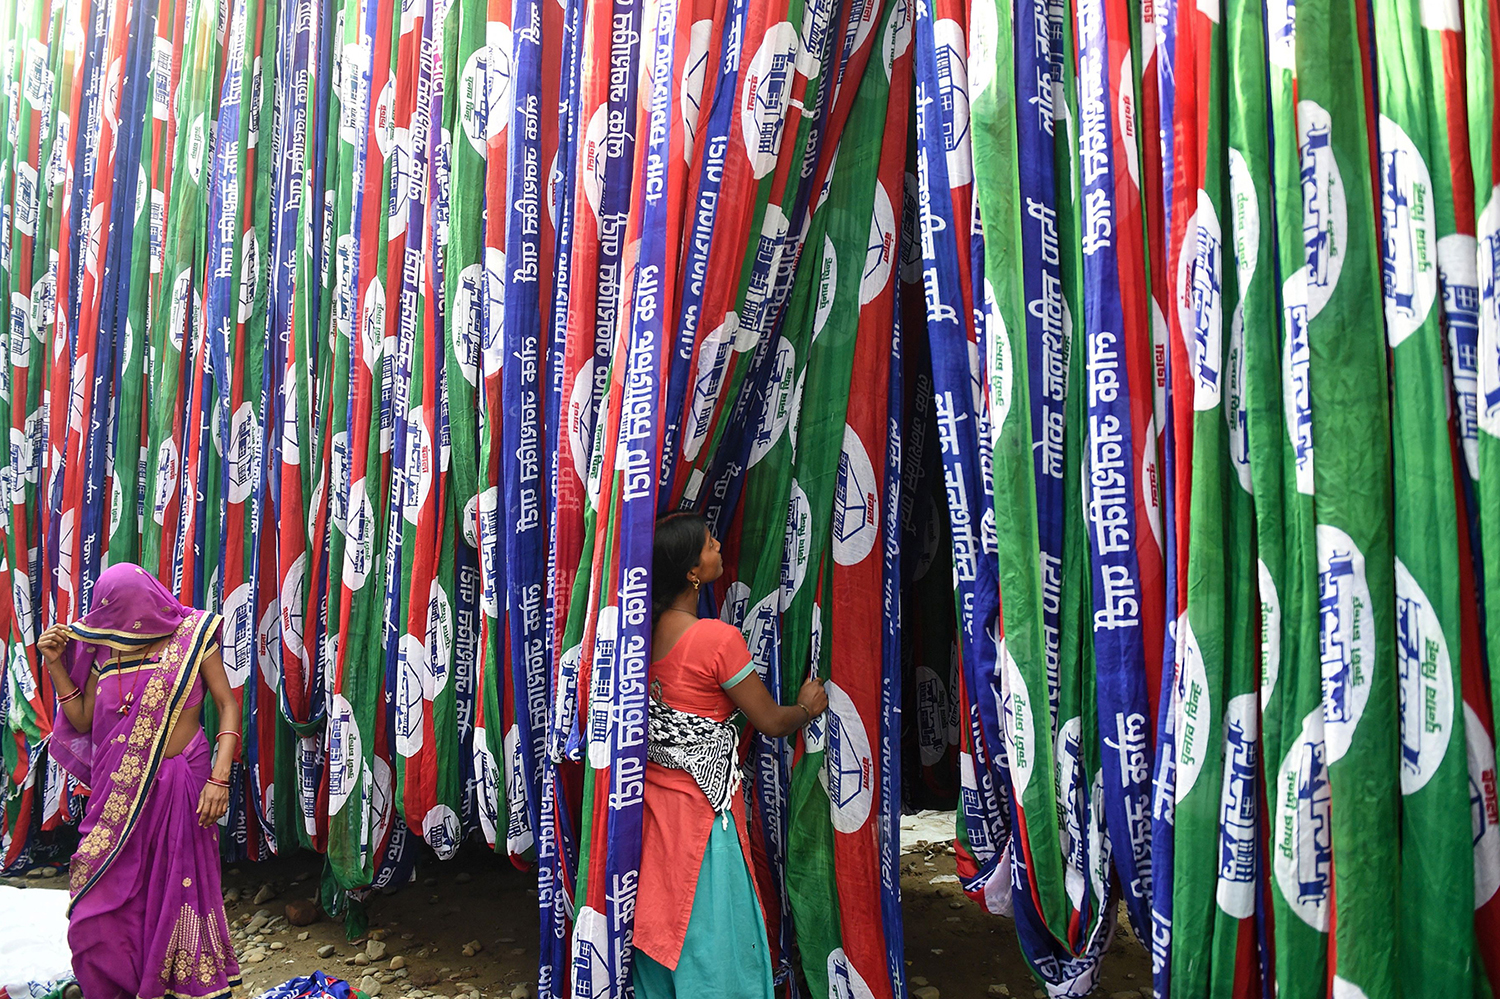 Indian workers dry textile materials dedicated to the Lok Janshakti Party ahead of India's general election, on the outskirts of Ahmedabad, on April 1. SAM PANTHAKY/AFP/Getty Images